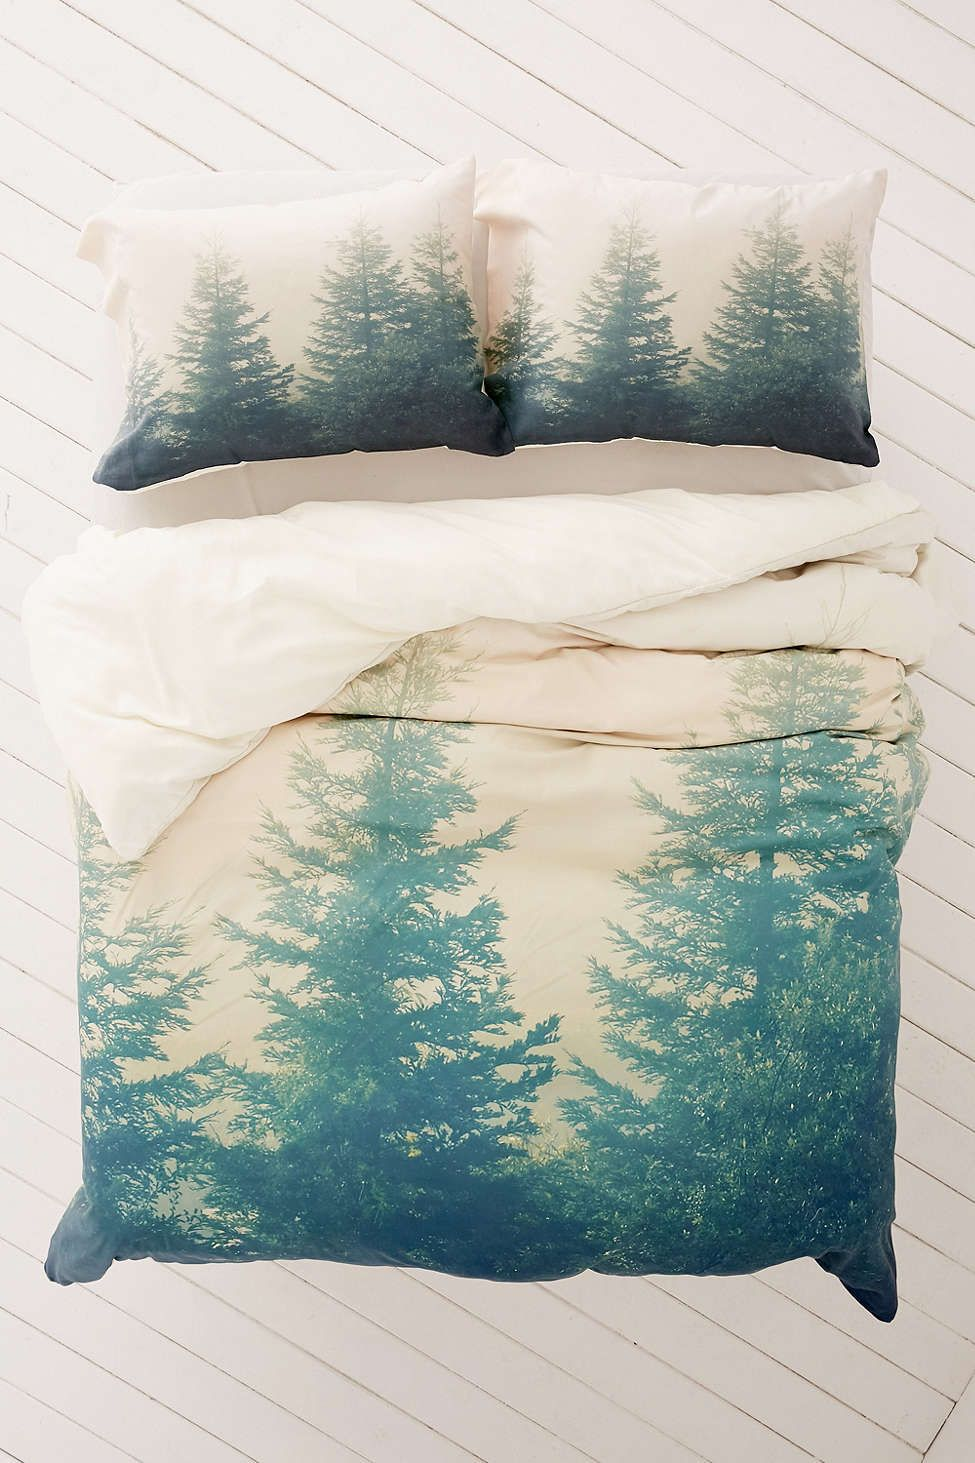 Chelsea Victoria For DENY Going The Distance Duvet Cover